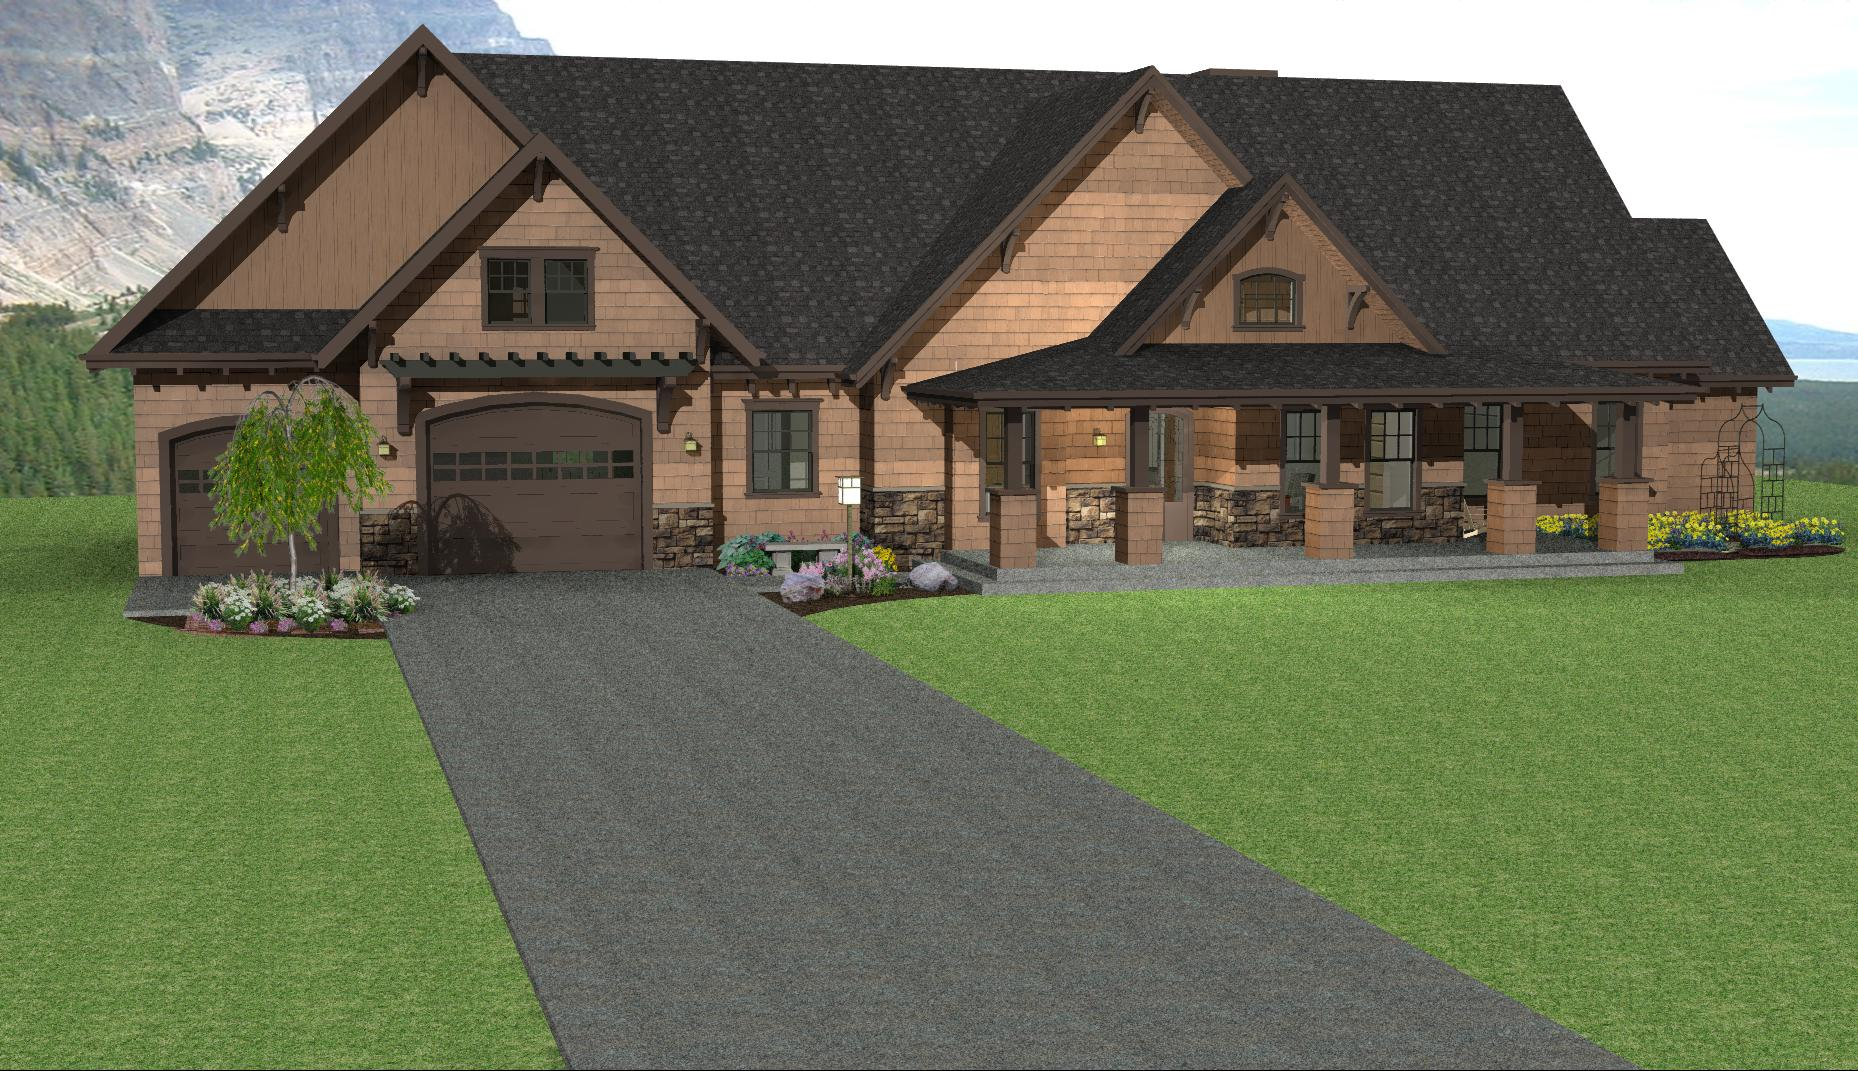 Ranch style home designs find house plans Ranch home design ideas